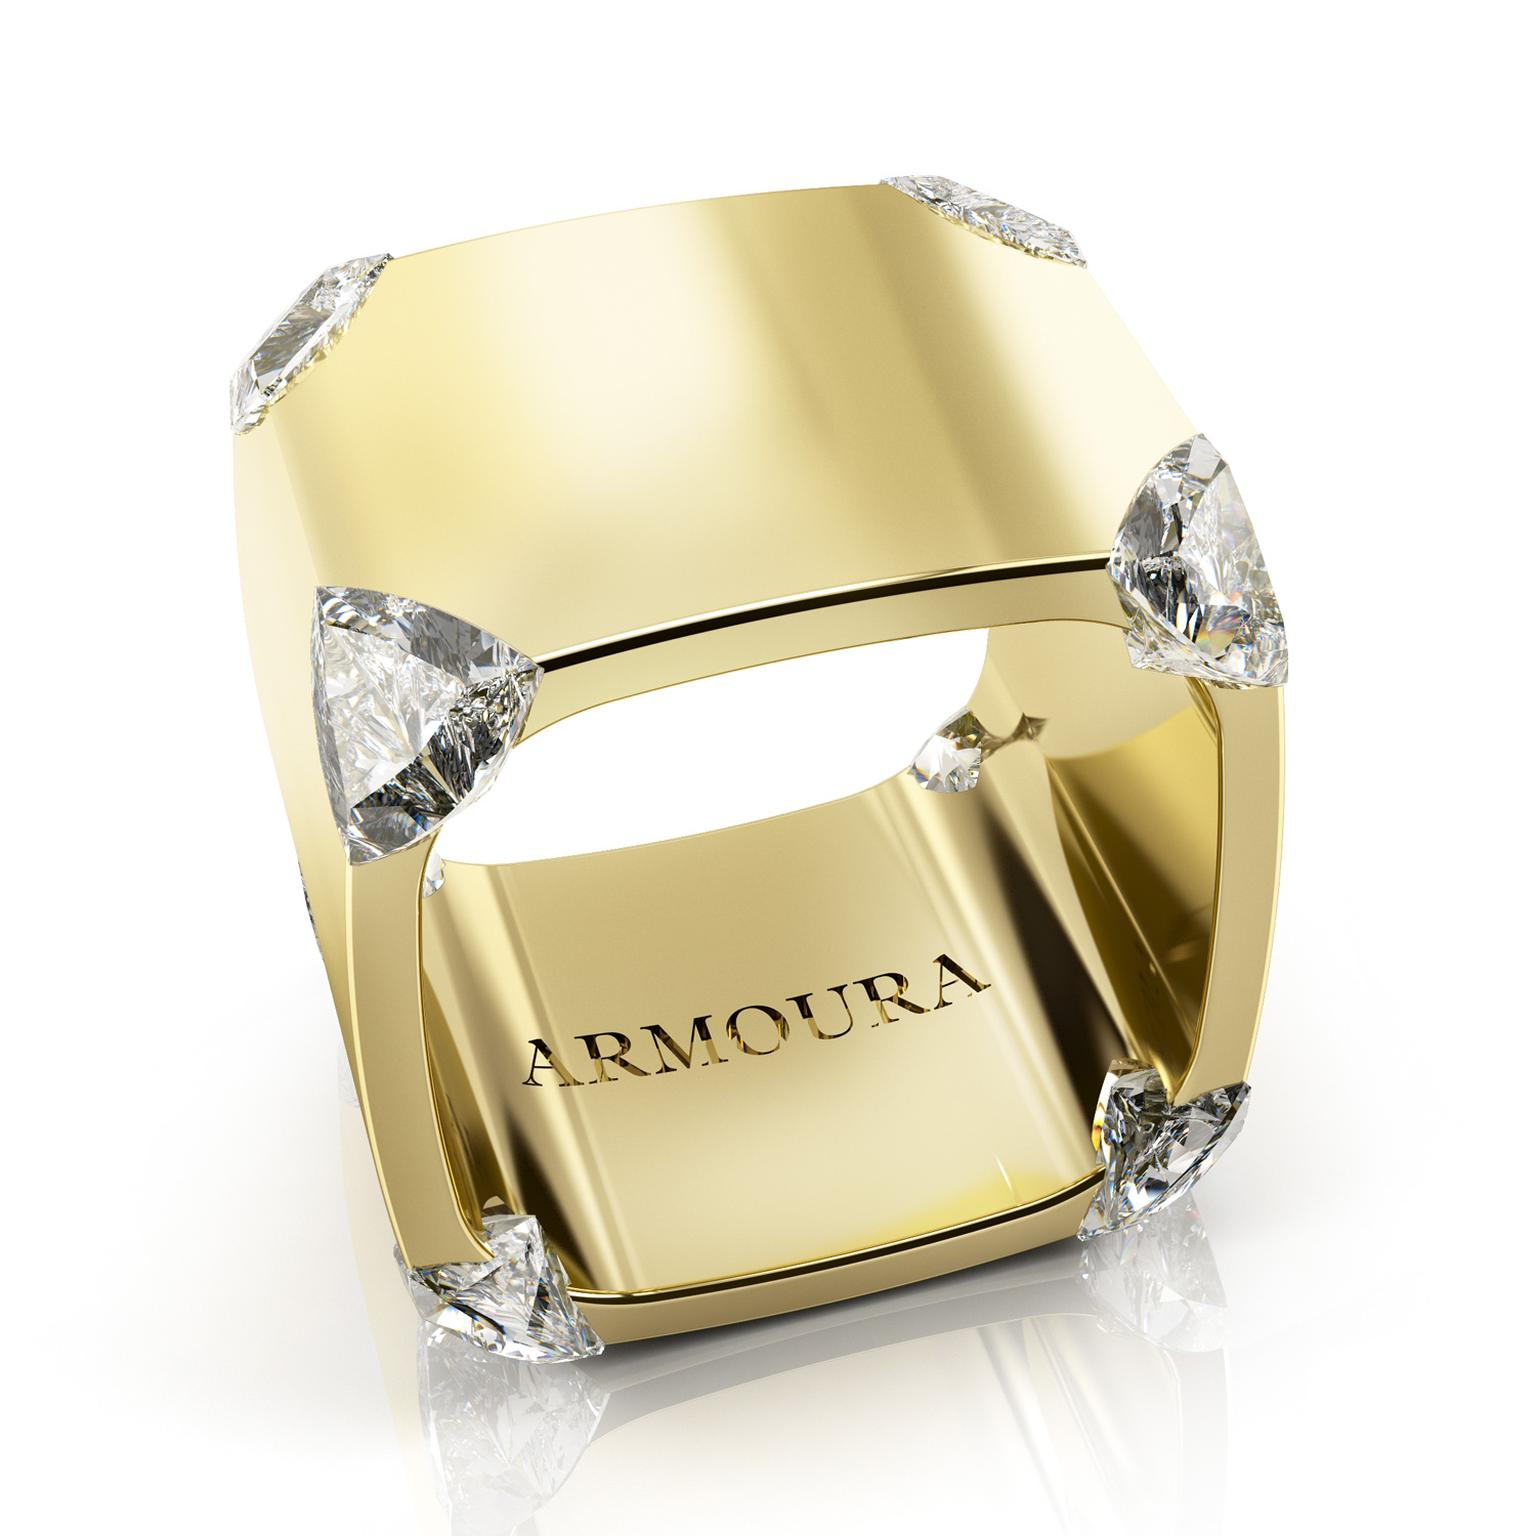 Armoura Trilliant ring in yellow gold with diamonds